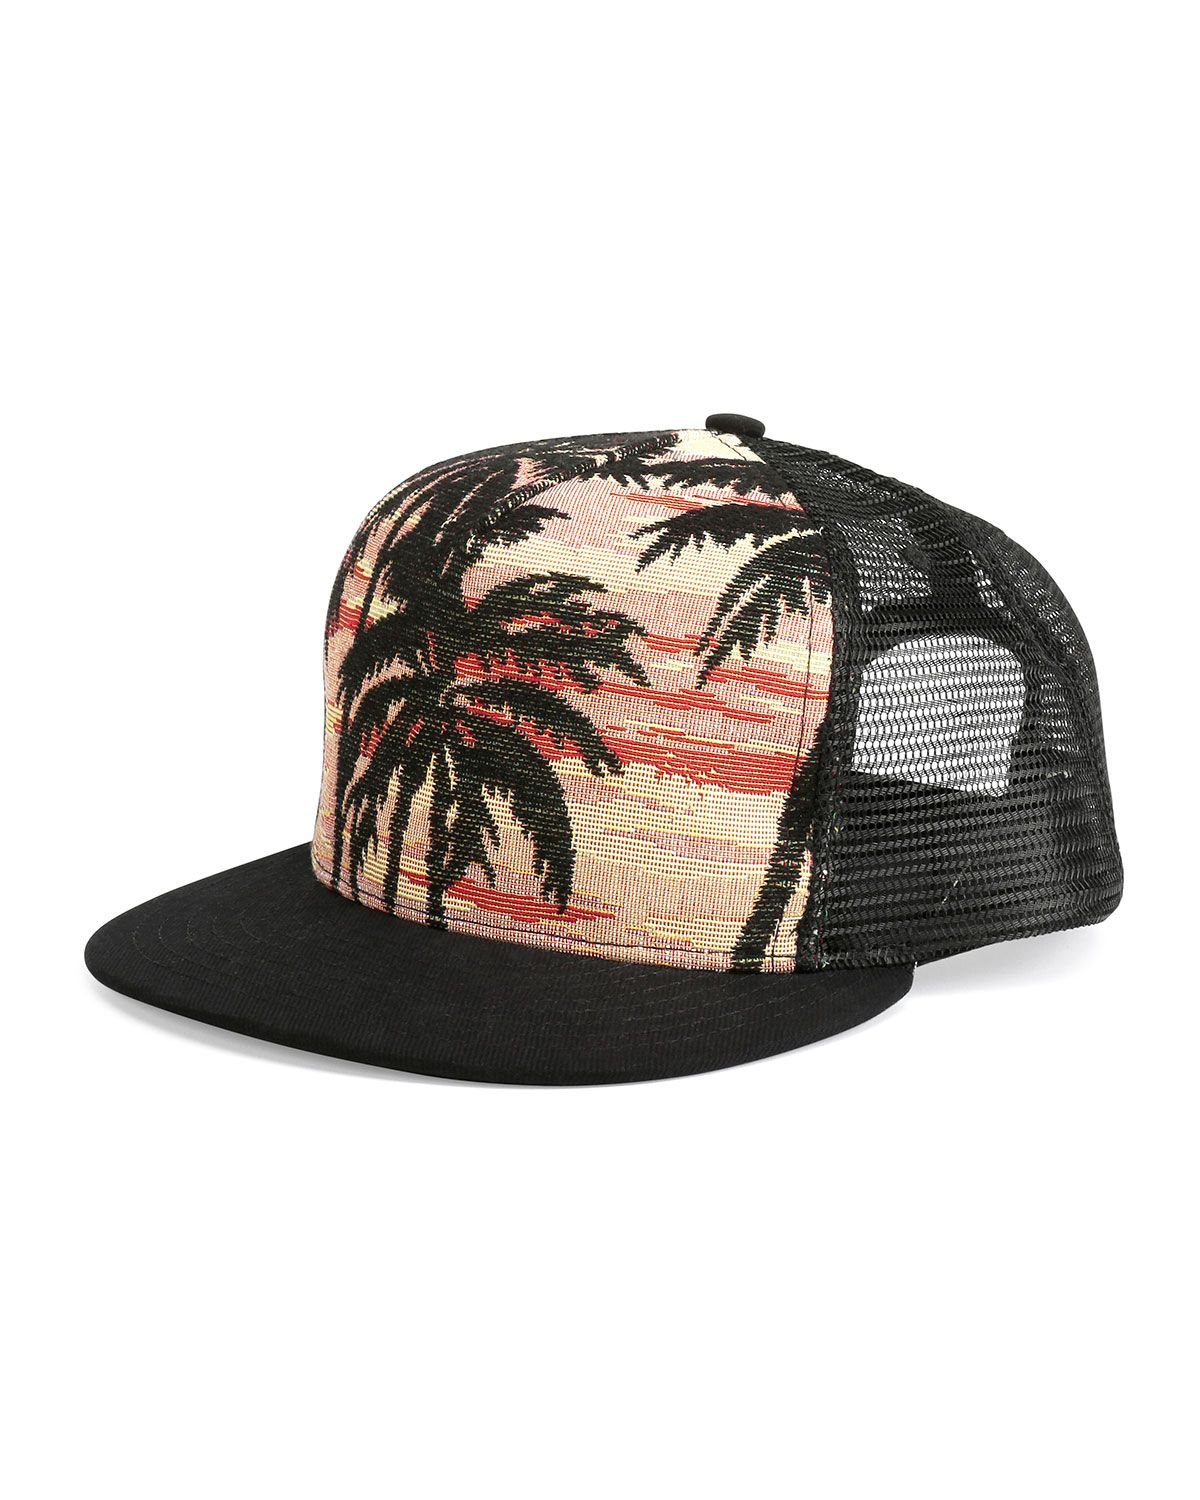 Yves Saint Laurent Palm Tree Printed Flat-Bill Hat cee2cb9fc55